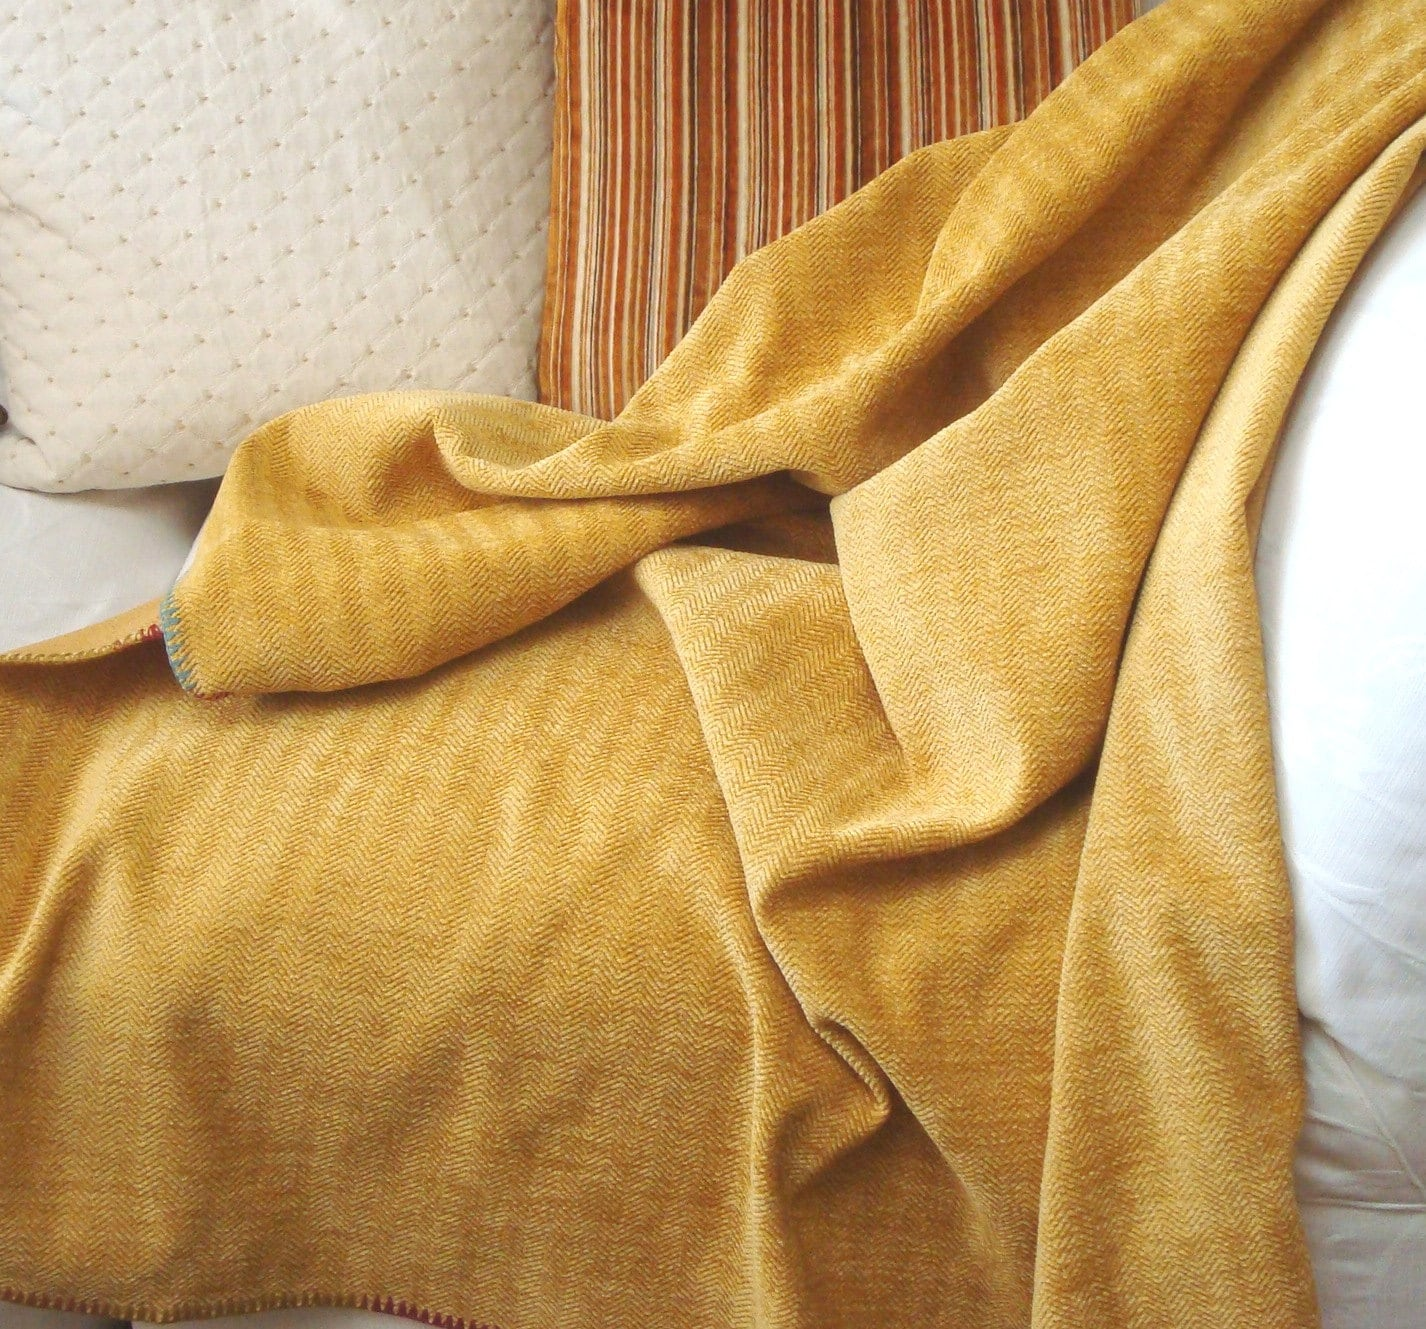 Sunflower Yellow Throw Blanket Decorative Hand Stitch Trim